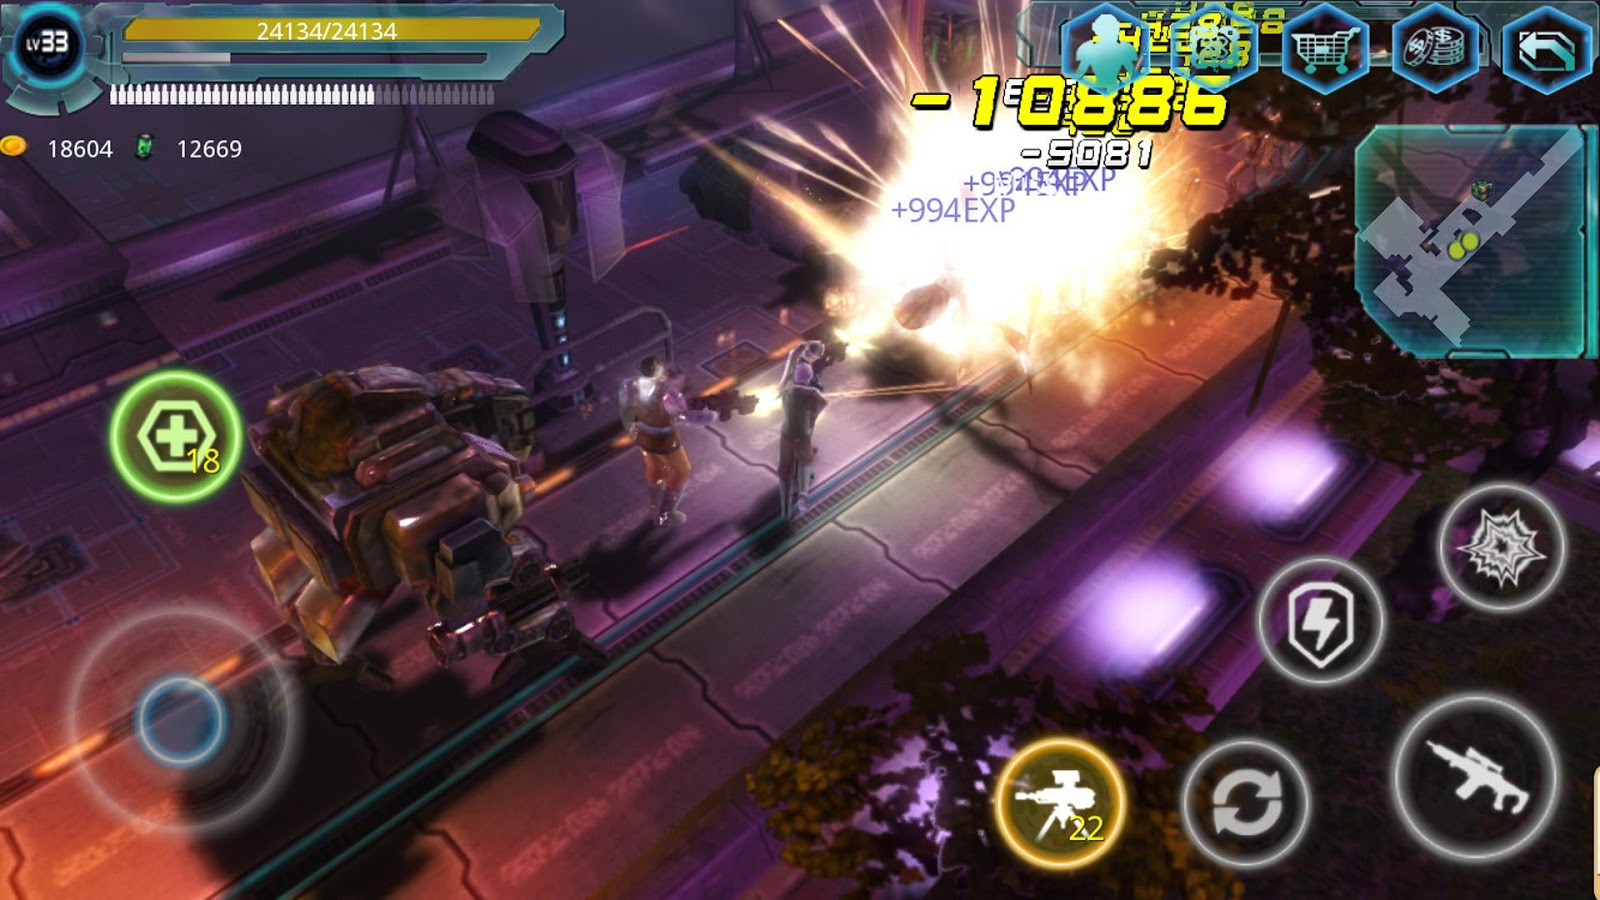 Alien Zone Raid Screenshot 13